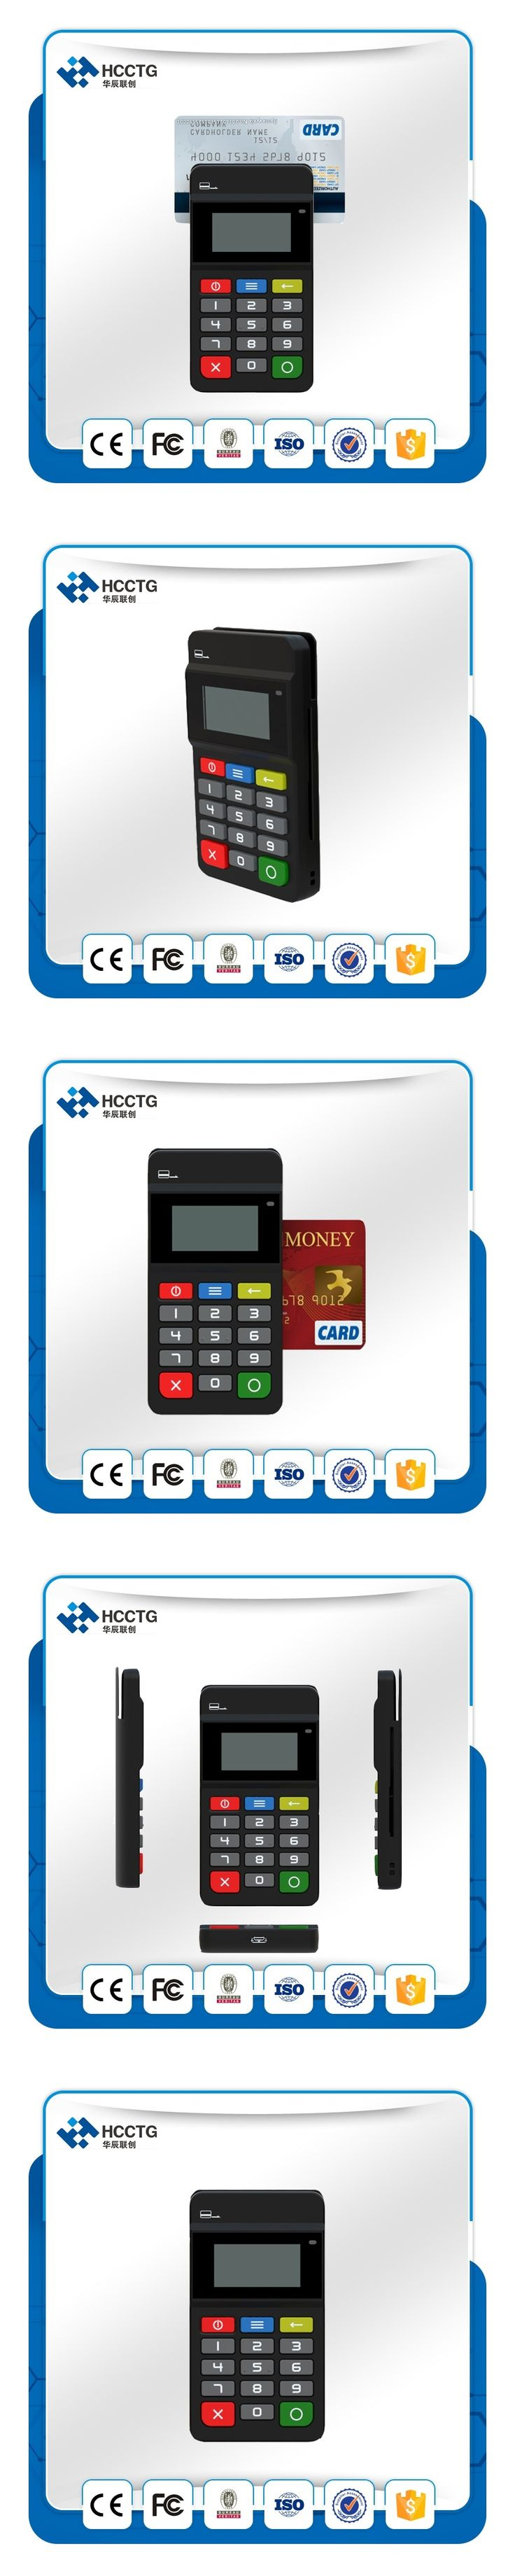 New Bluetooth mobile POS payment terminal with nfc readermagnetic card reader and display keypad from China supplier HTY711